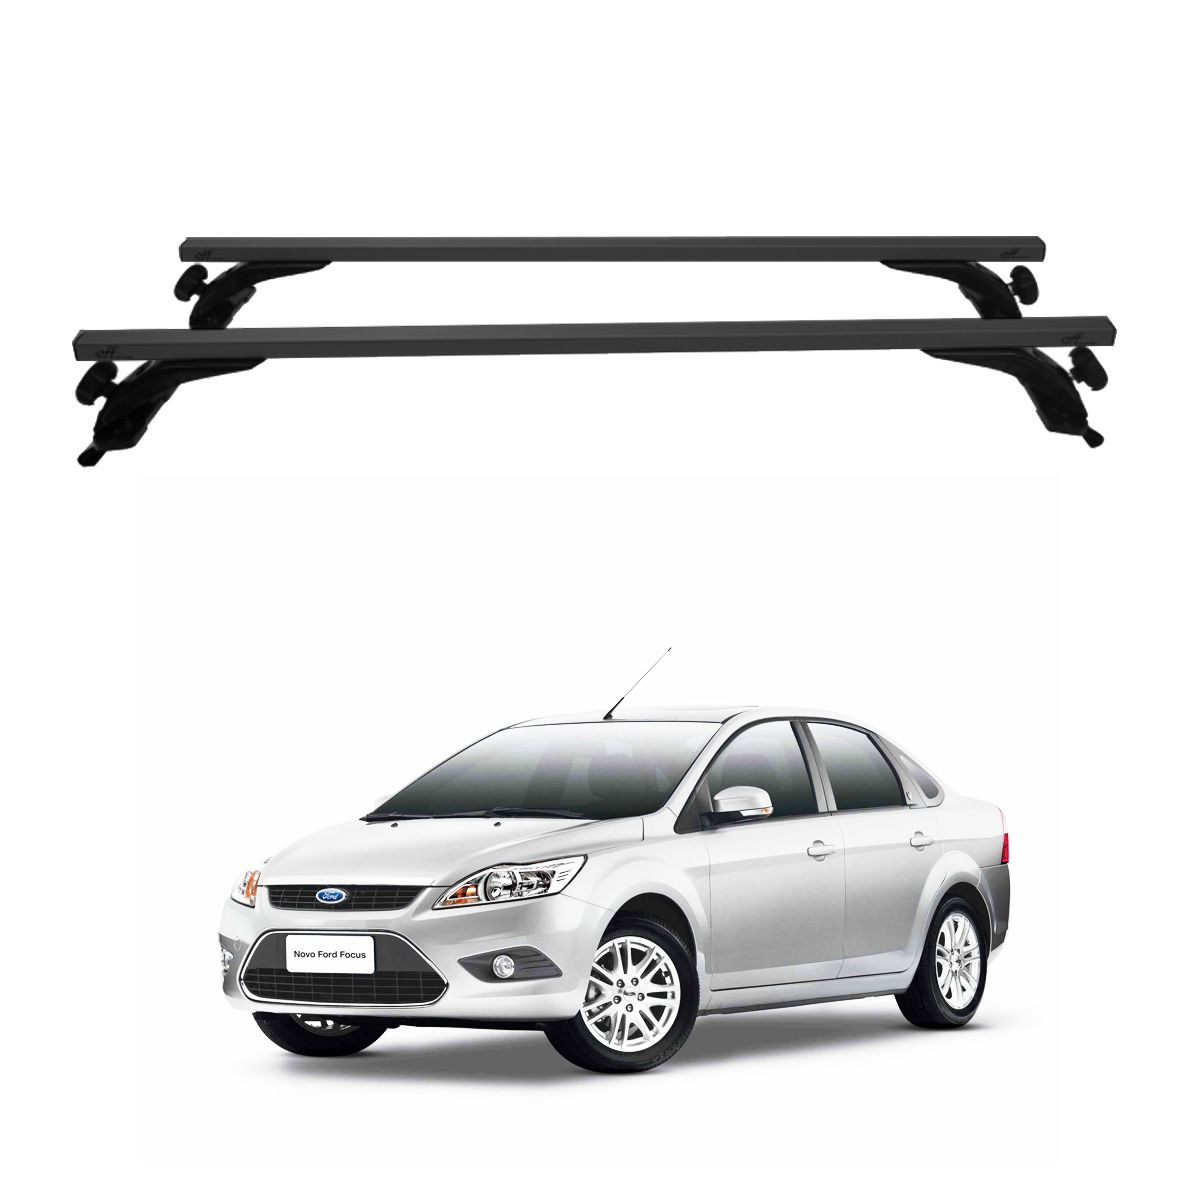 Rack Travessa de Teto Alumínio Preto Ford Focus Sedan